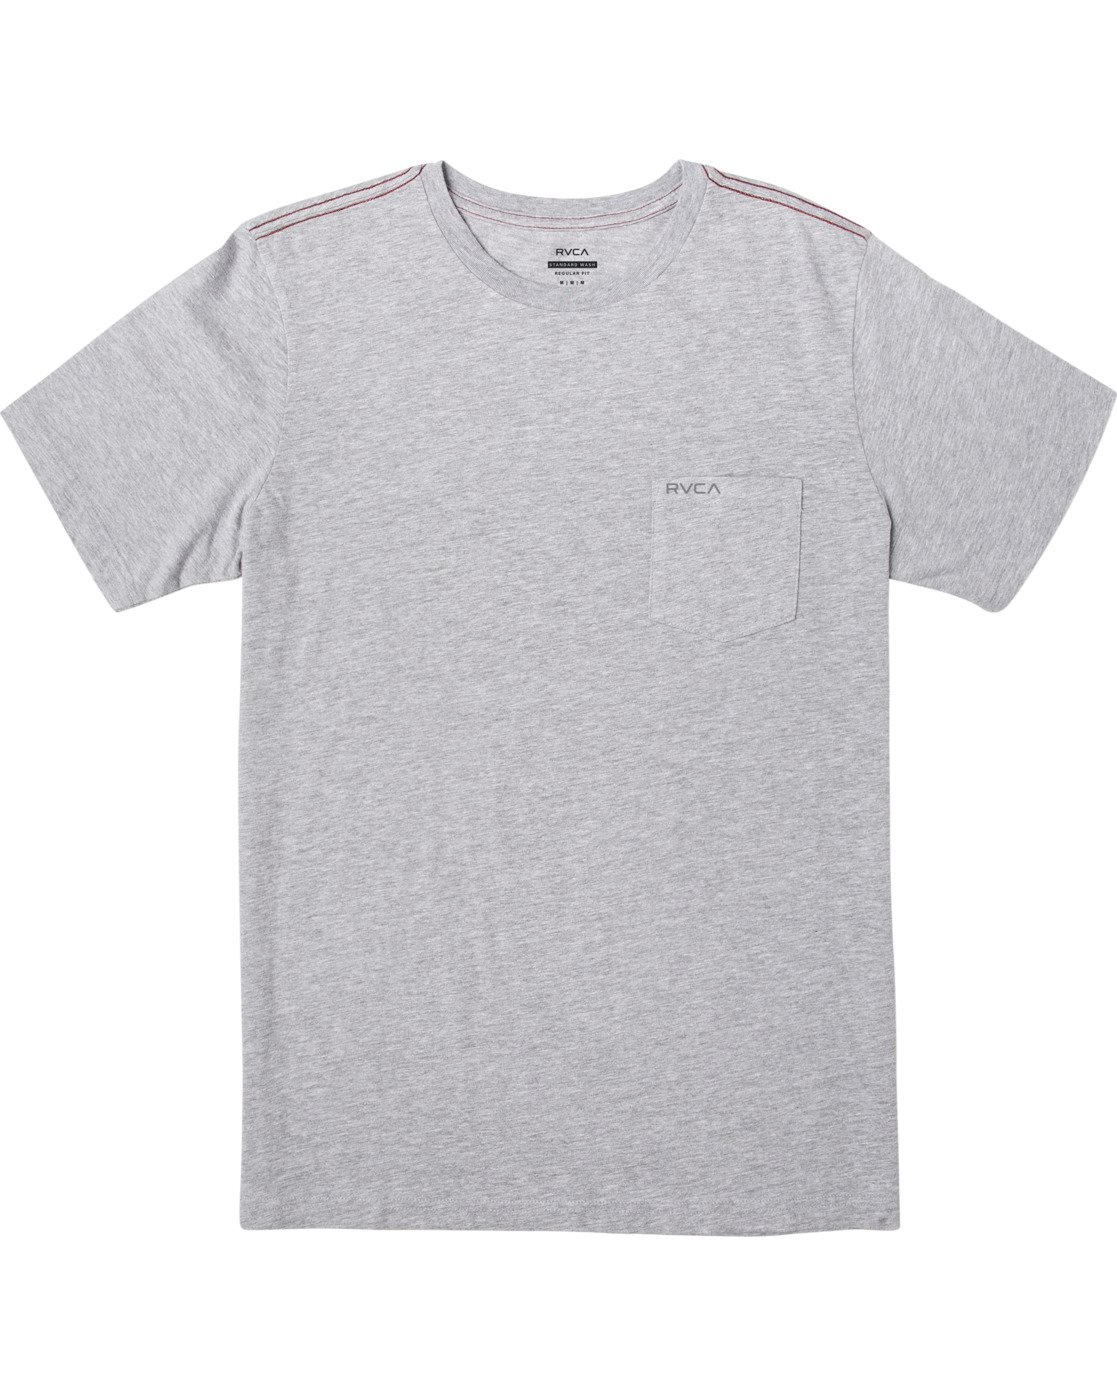 0 PTC STANDARD WASH SHORT SLEEVE TEE Grey M436VRPT RVCA